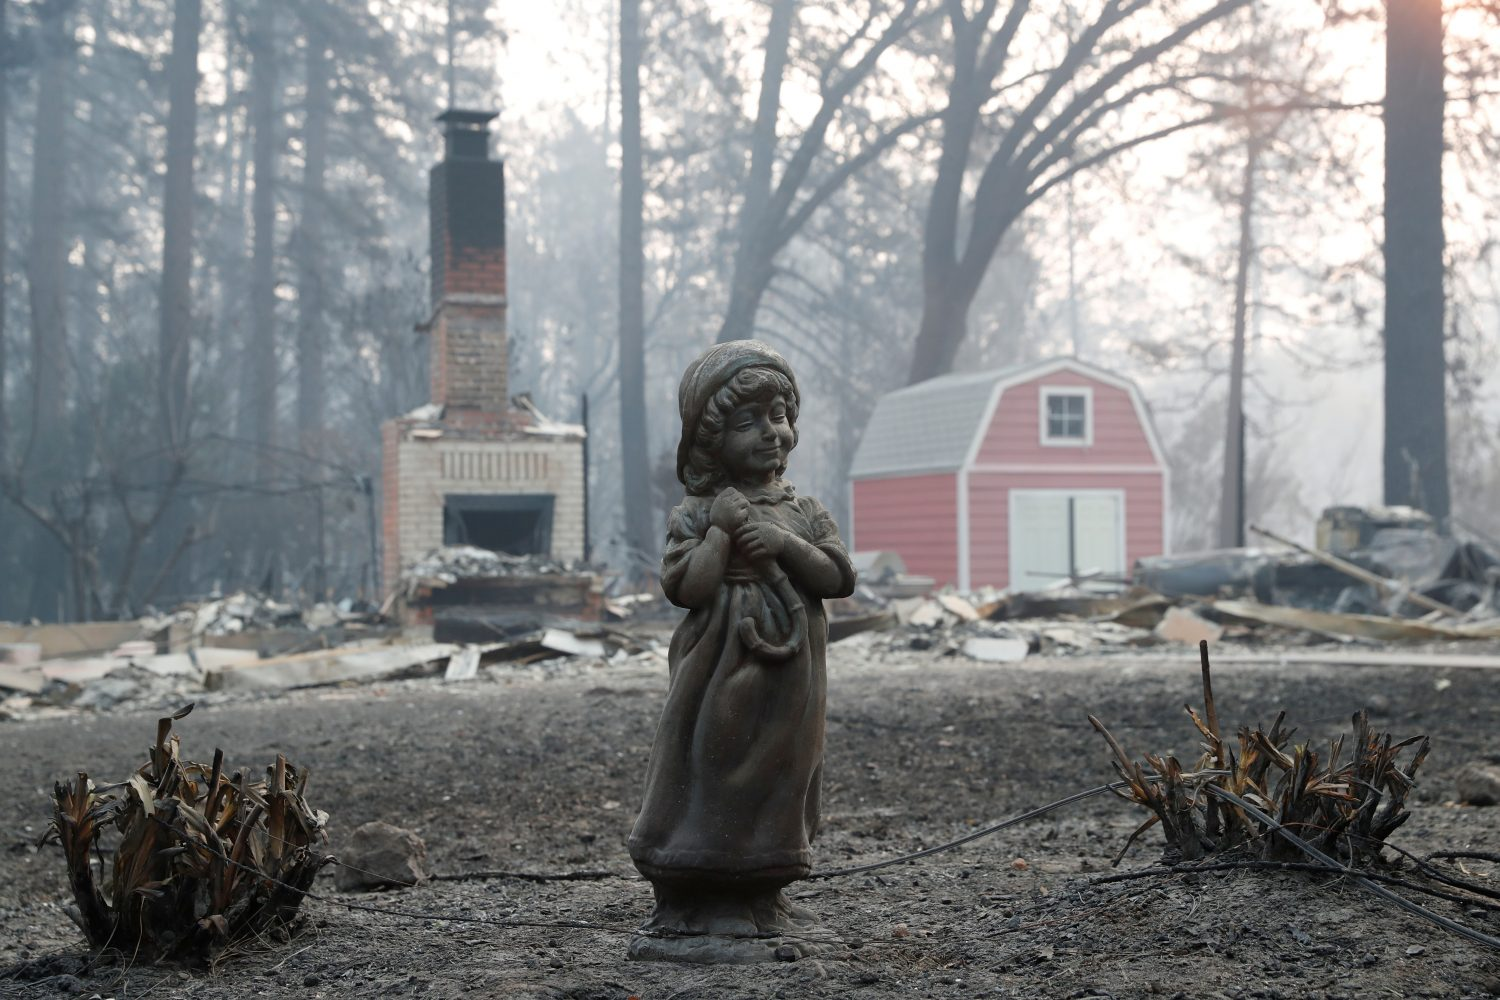 FILE PHOTO: A statue stands in front of a home destroyed by the Camp Fire in Paradise, California, U.S., November 17, 2018. REUTERS/Terray Sylvester/File Photo